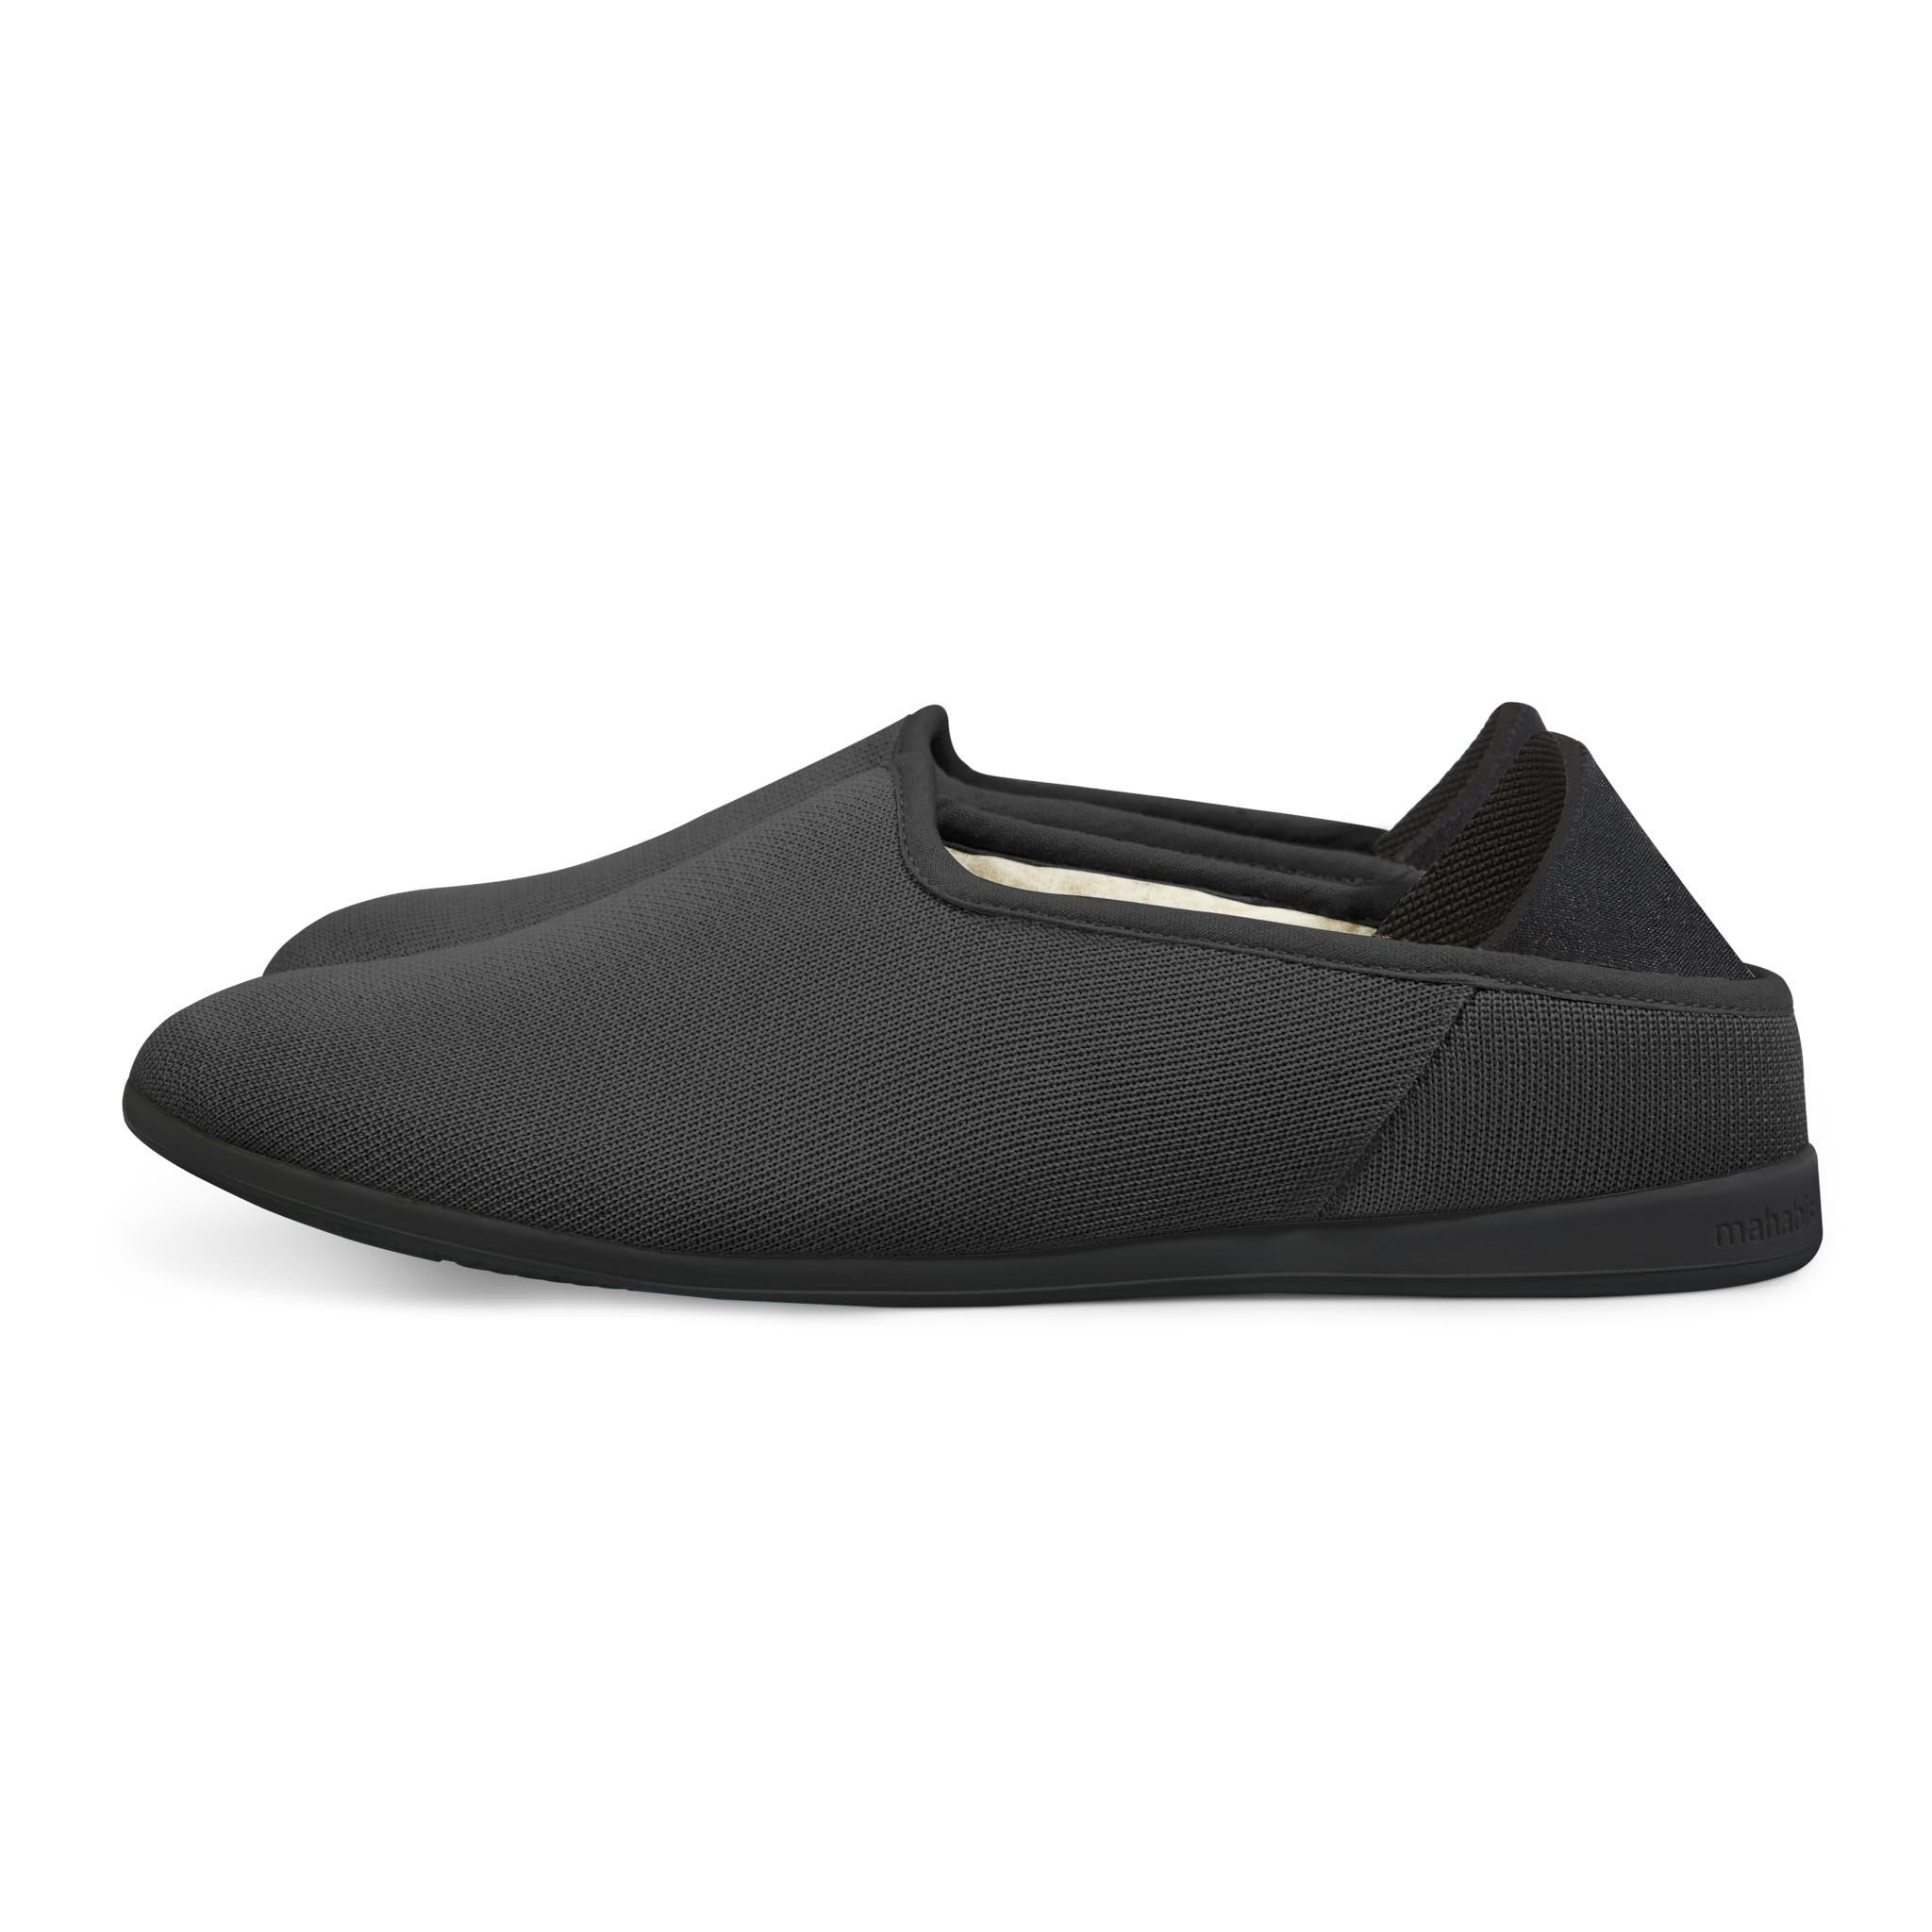 Black Edition Mahabis Canvas Slipper